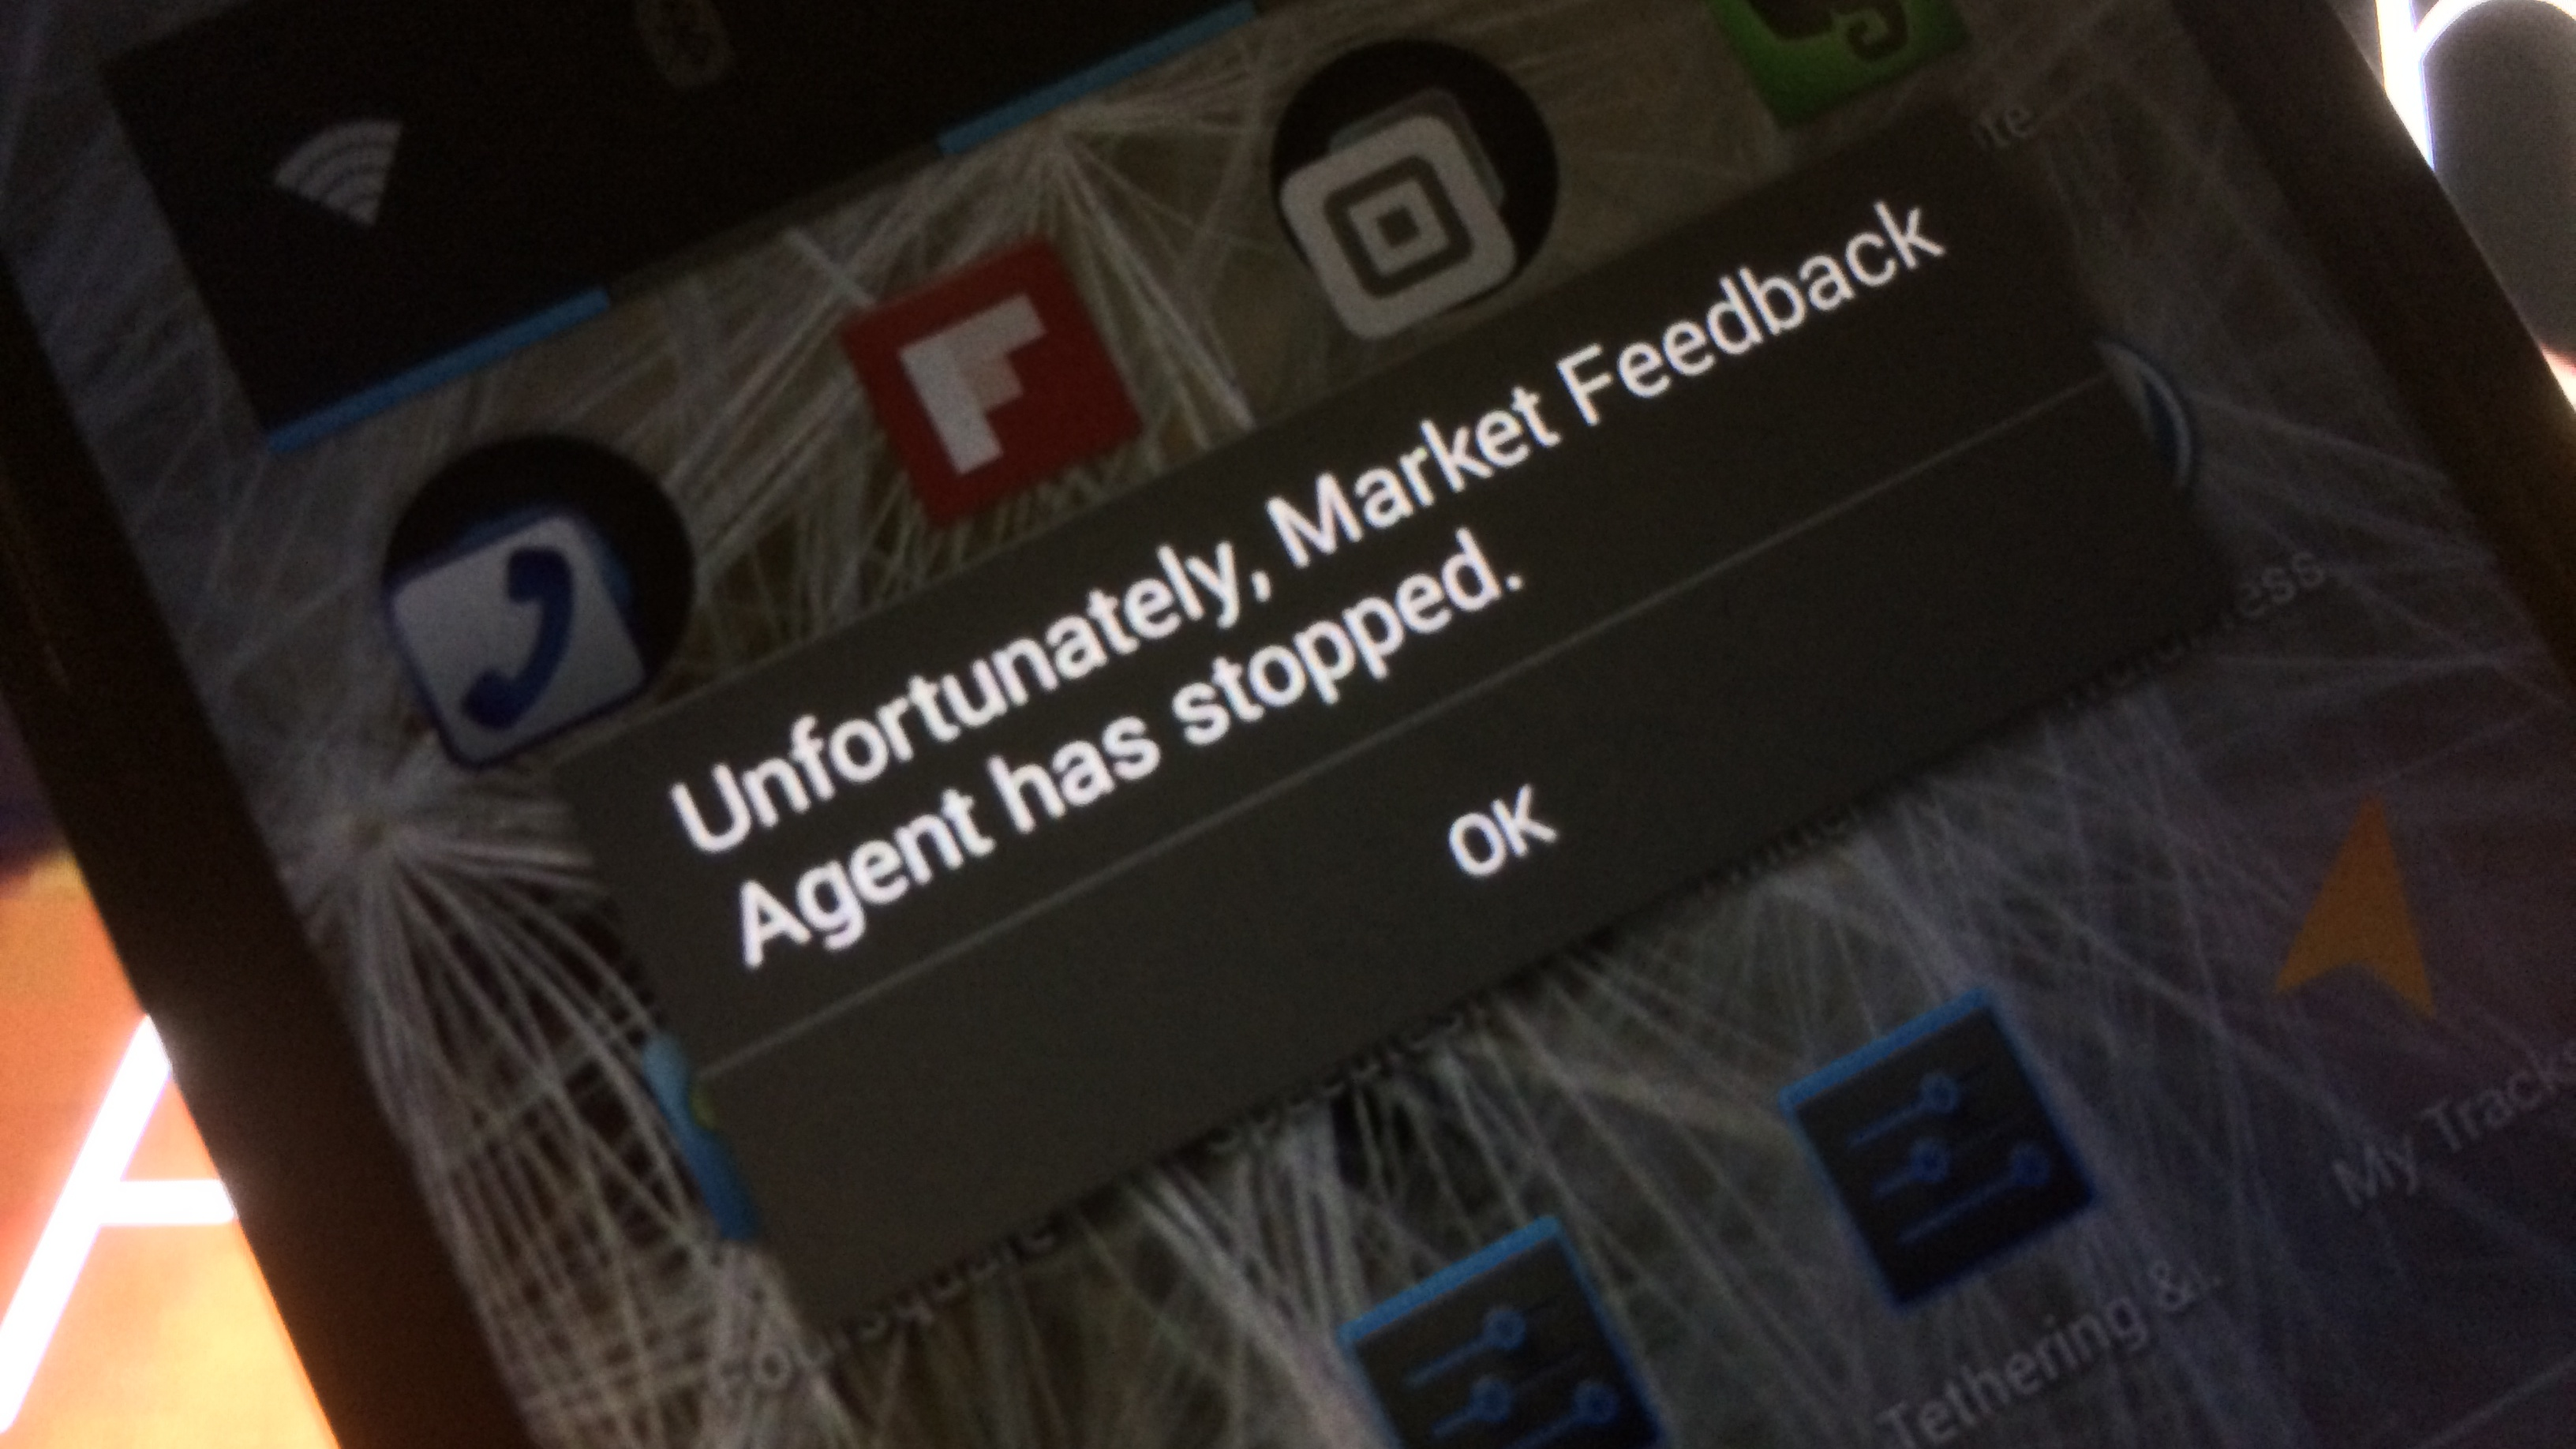 Android Market Feedback Agent has stopped